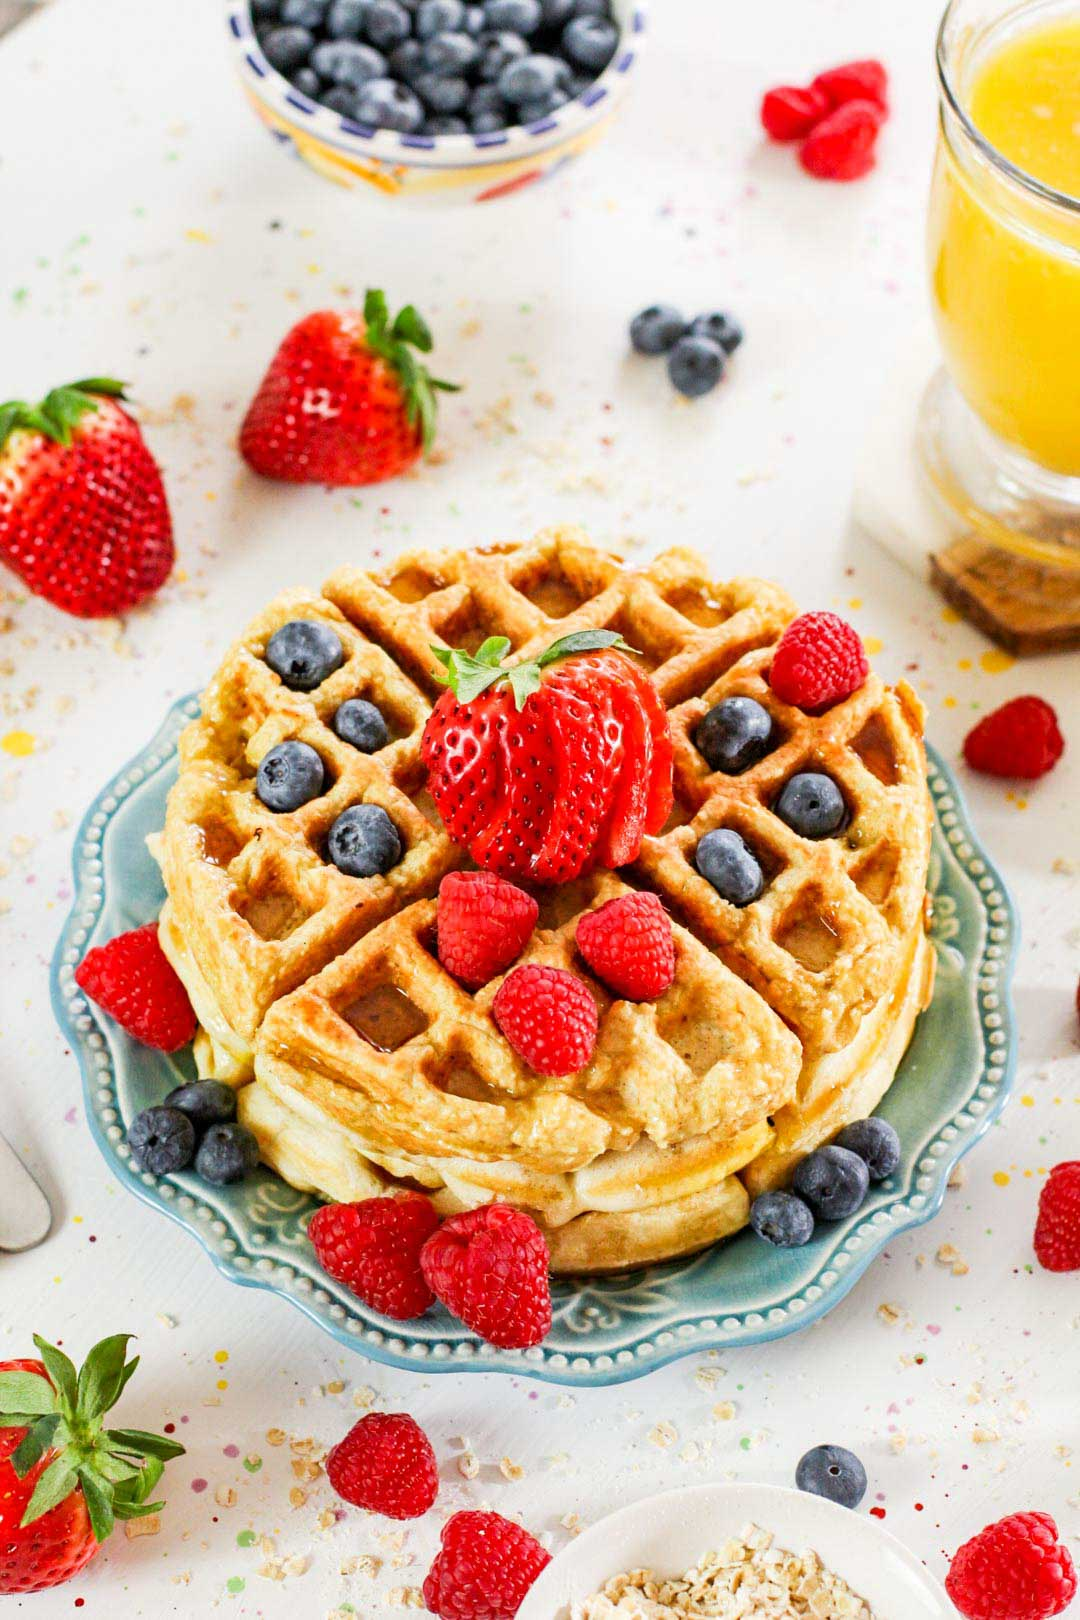 two waffles on a plate with blueberries, strawberries and raspberries on top.